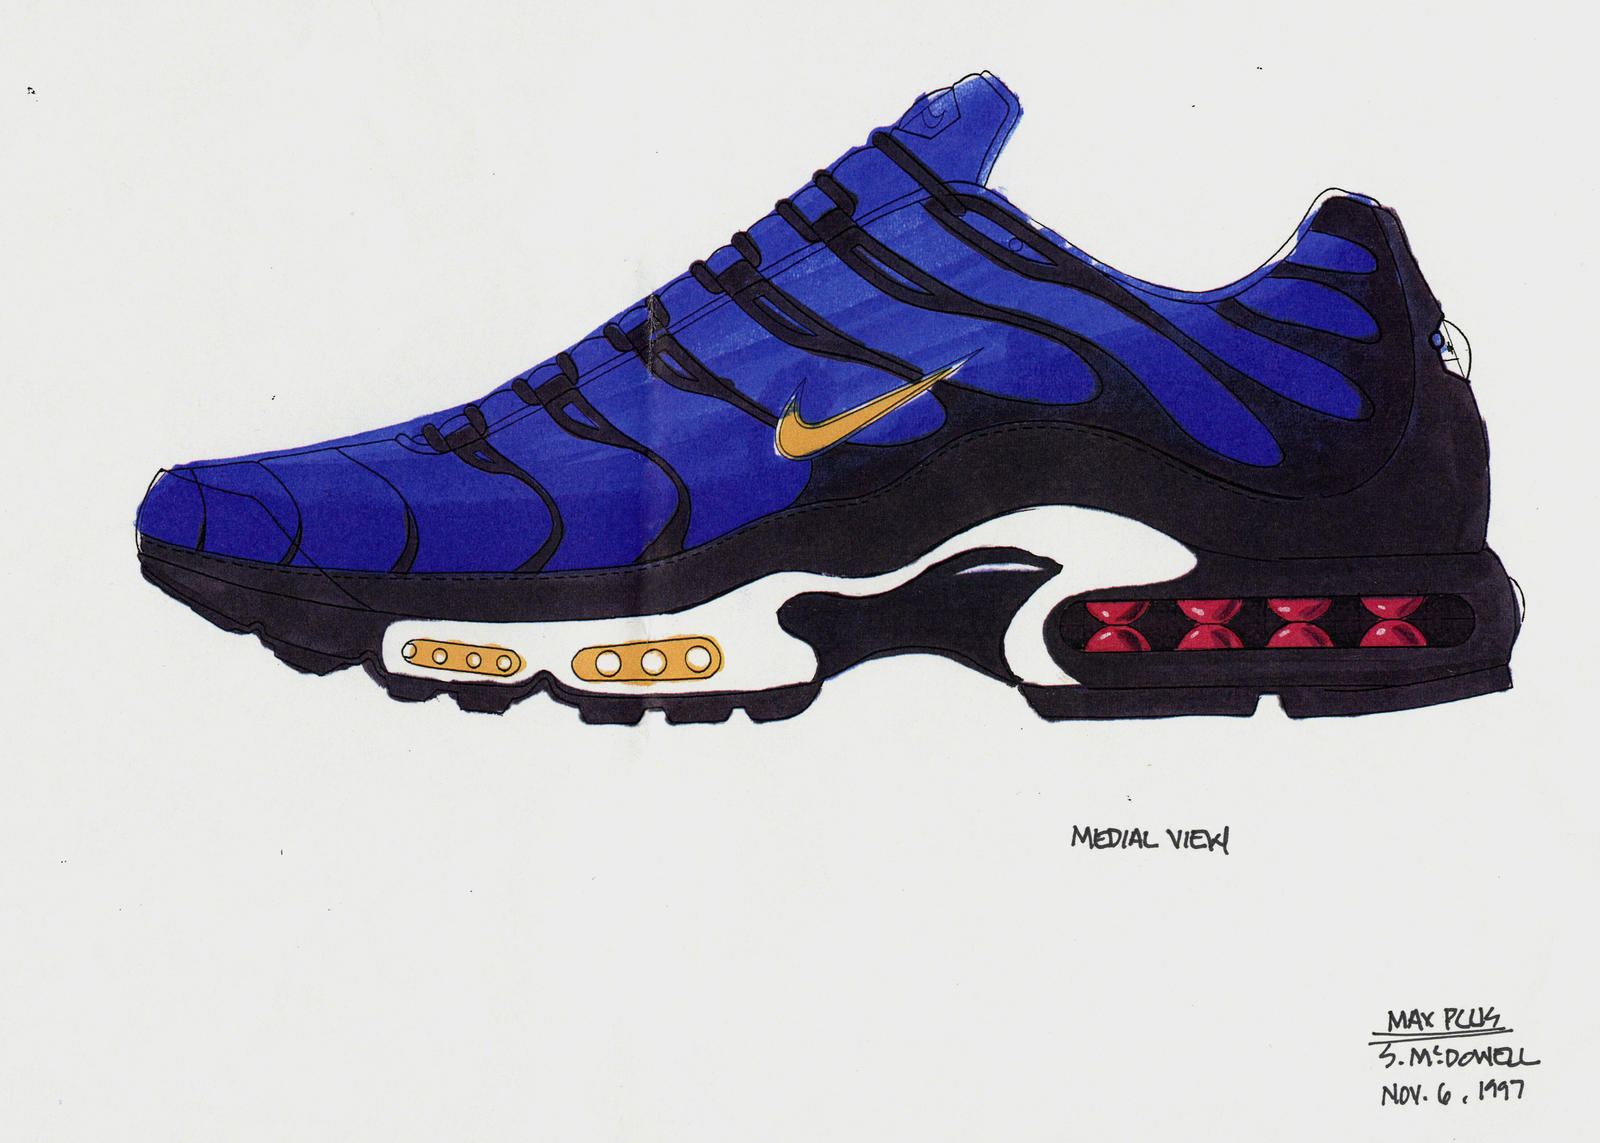 a792a8a49d5a56 The Untold Story of the Nike Air Max Plus - Nike News